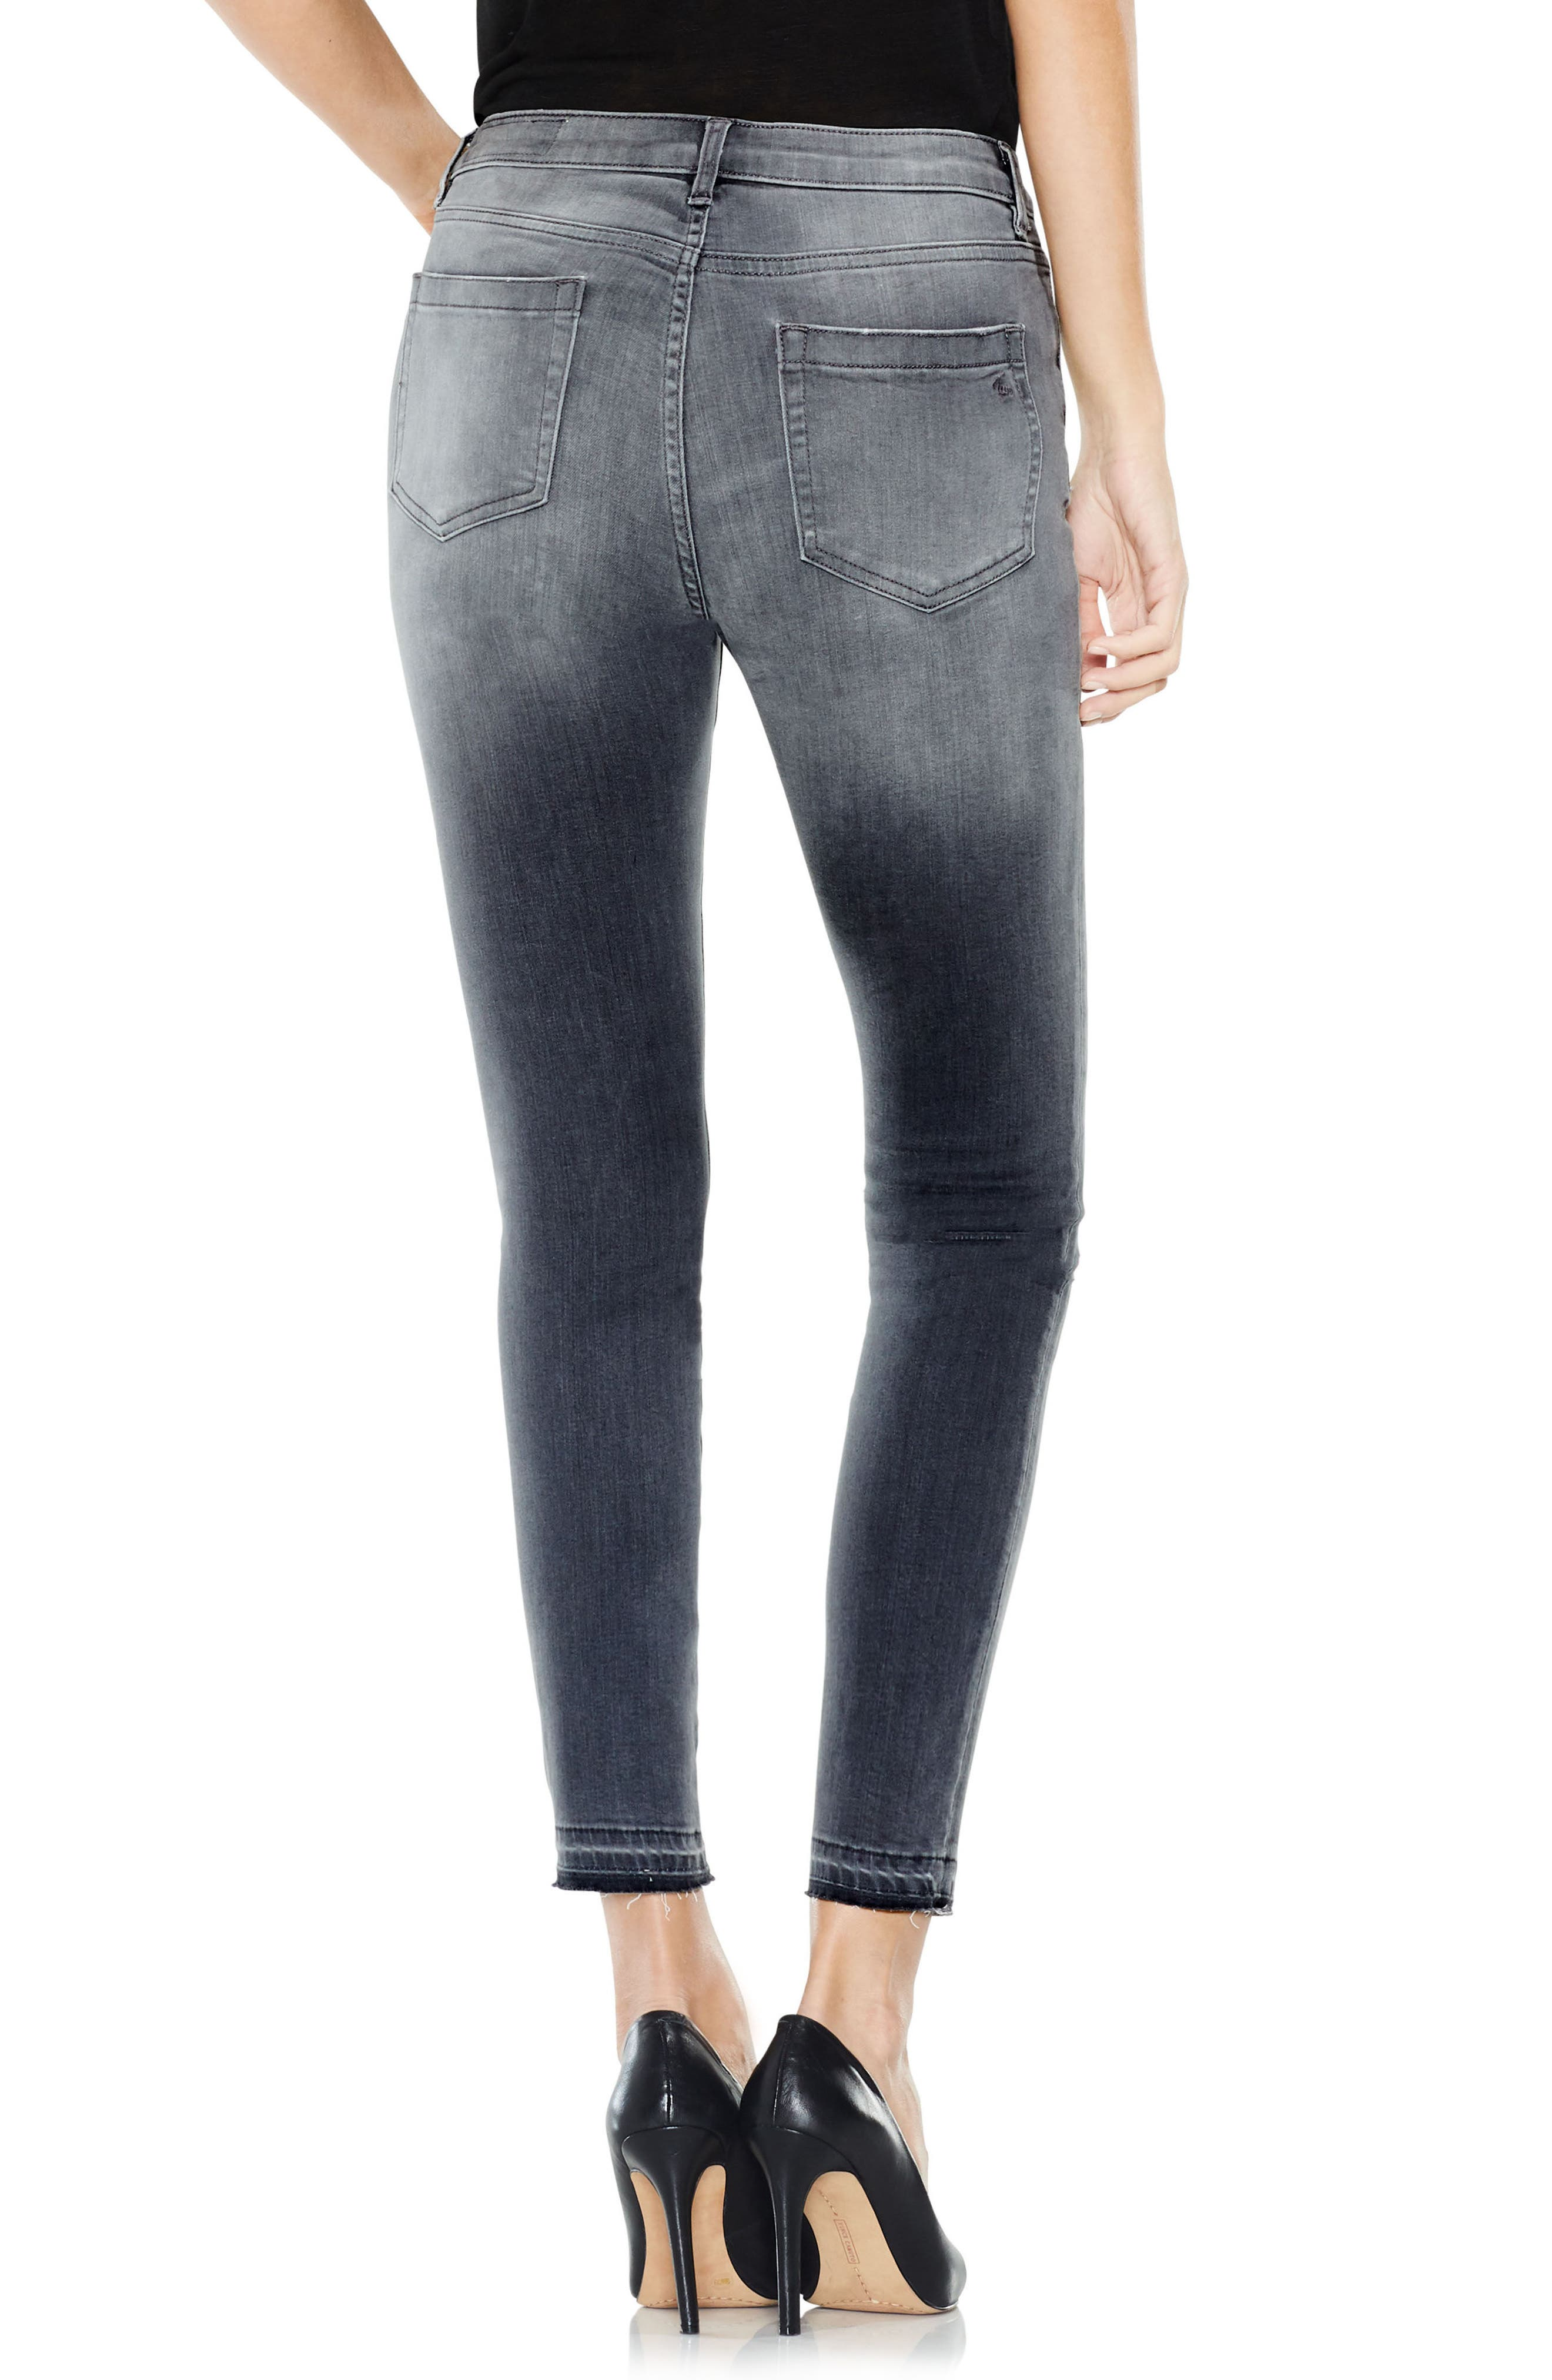 Two by Vince Camuto Grey Released Hem Jeans,                             Alternate thumbnail 2, color,                             COBBLESTONE